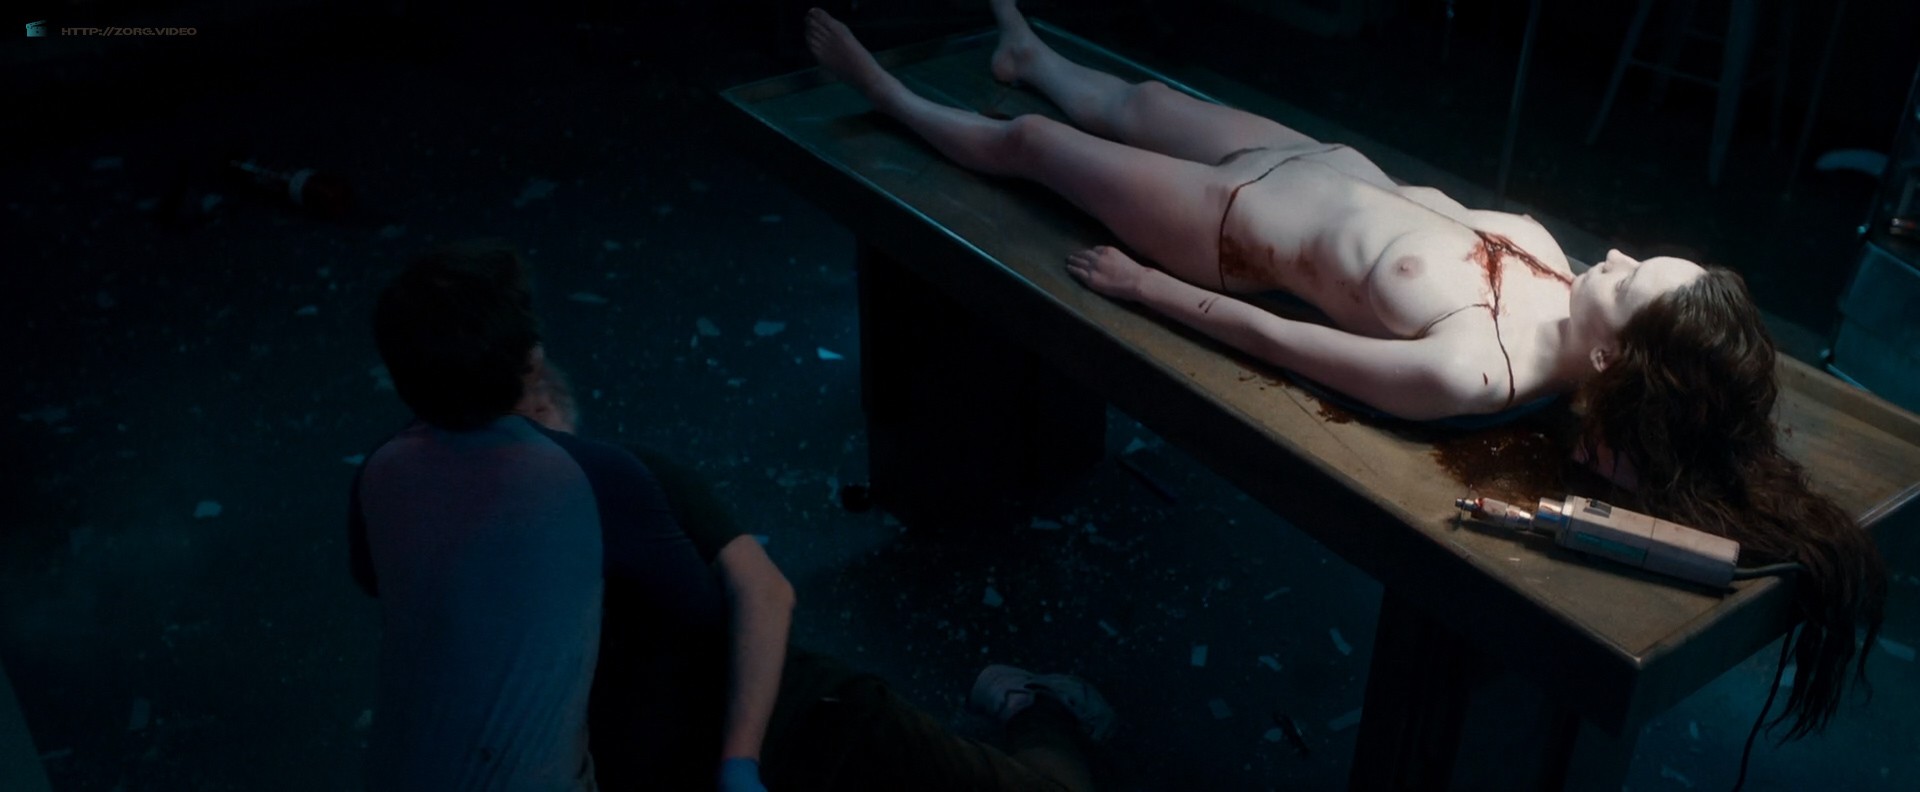 Olwen Catherine Kelly nude bush and boobs - The Autopsy of Jane Doe (2016) HD 1080p WebDl (4)